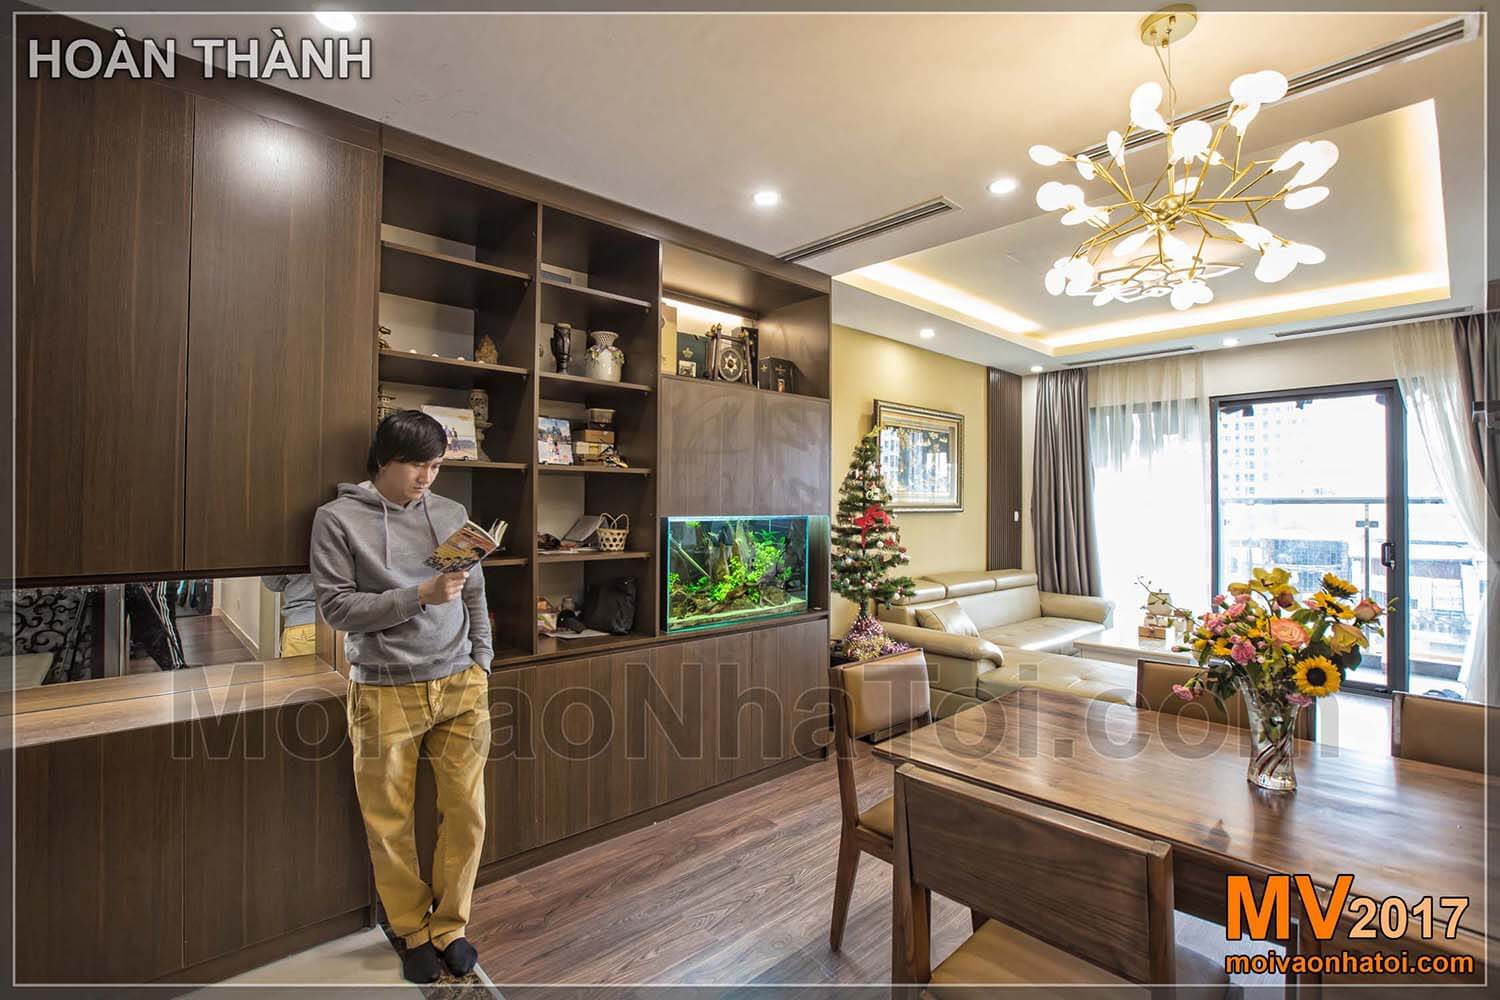 Display cabinets are both decorative and can accommodate many IMPERIA GARDEN apartments